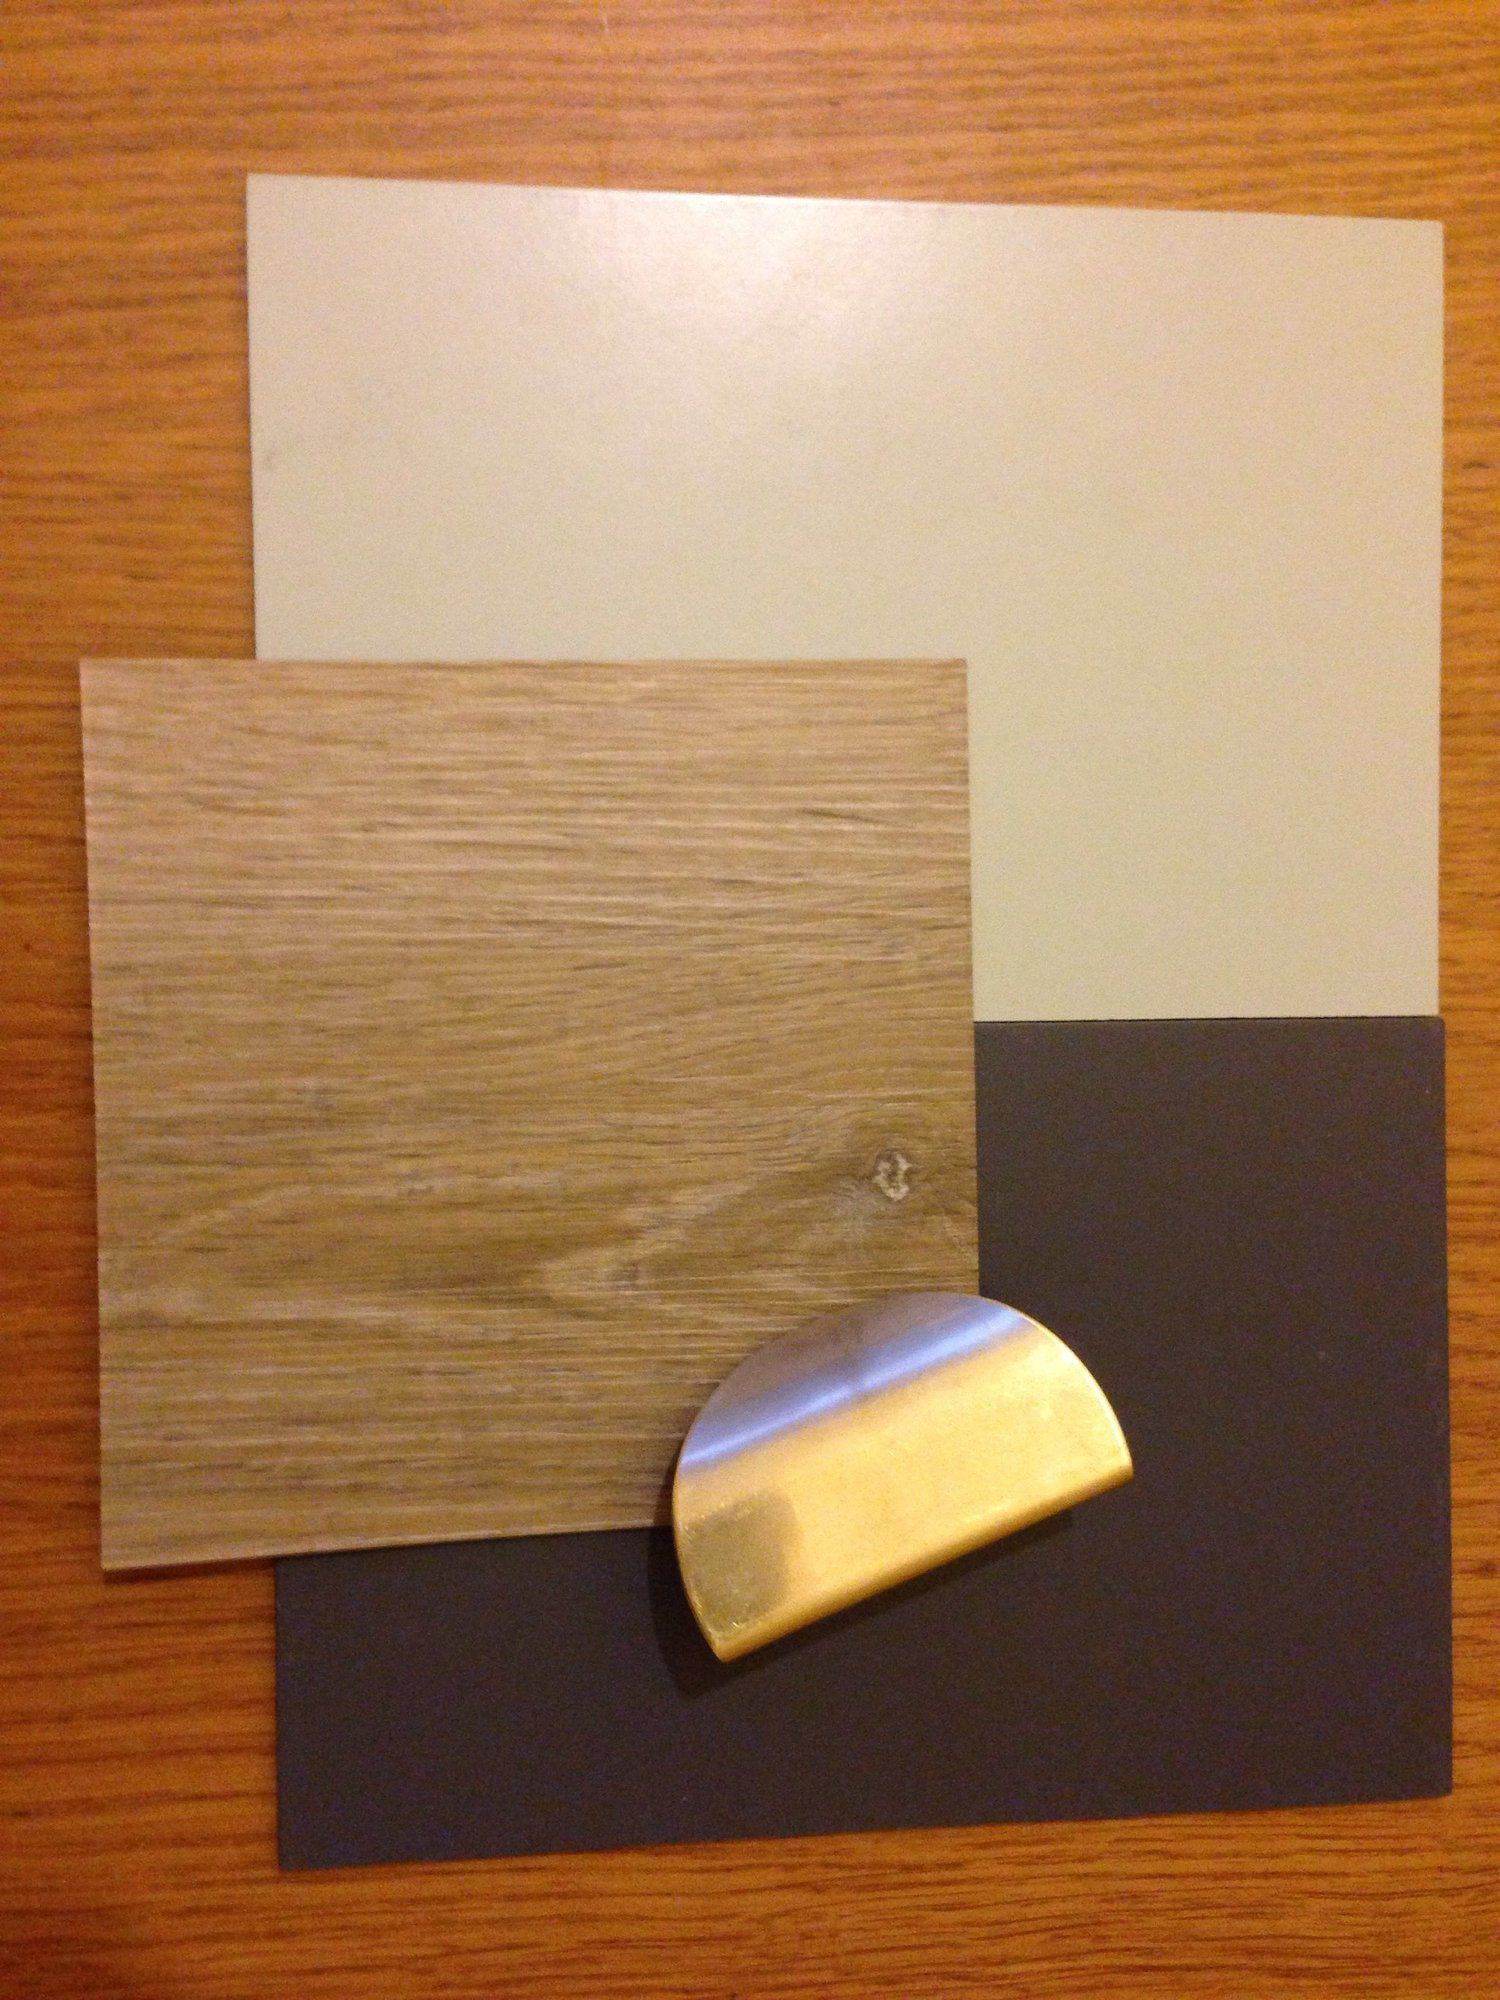 Wall Color Ideas for Kitchen Renovation? Good Questions